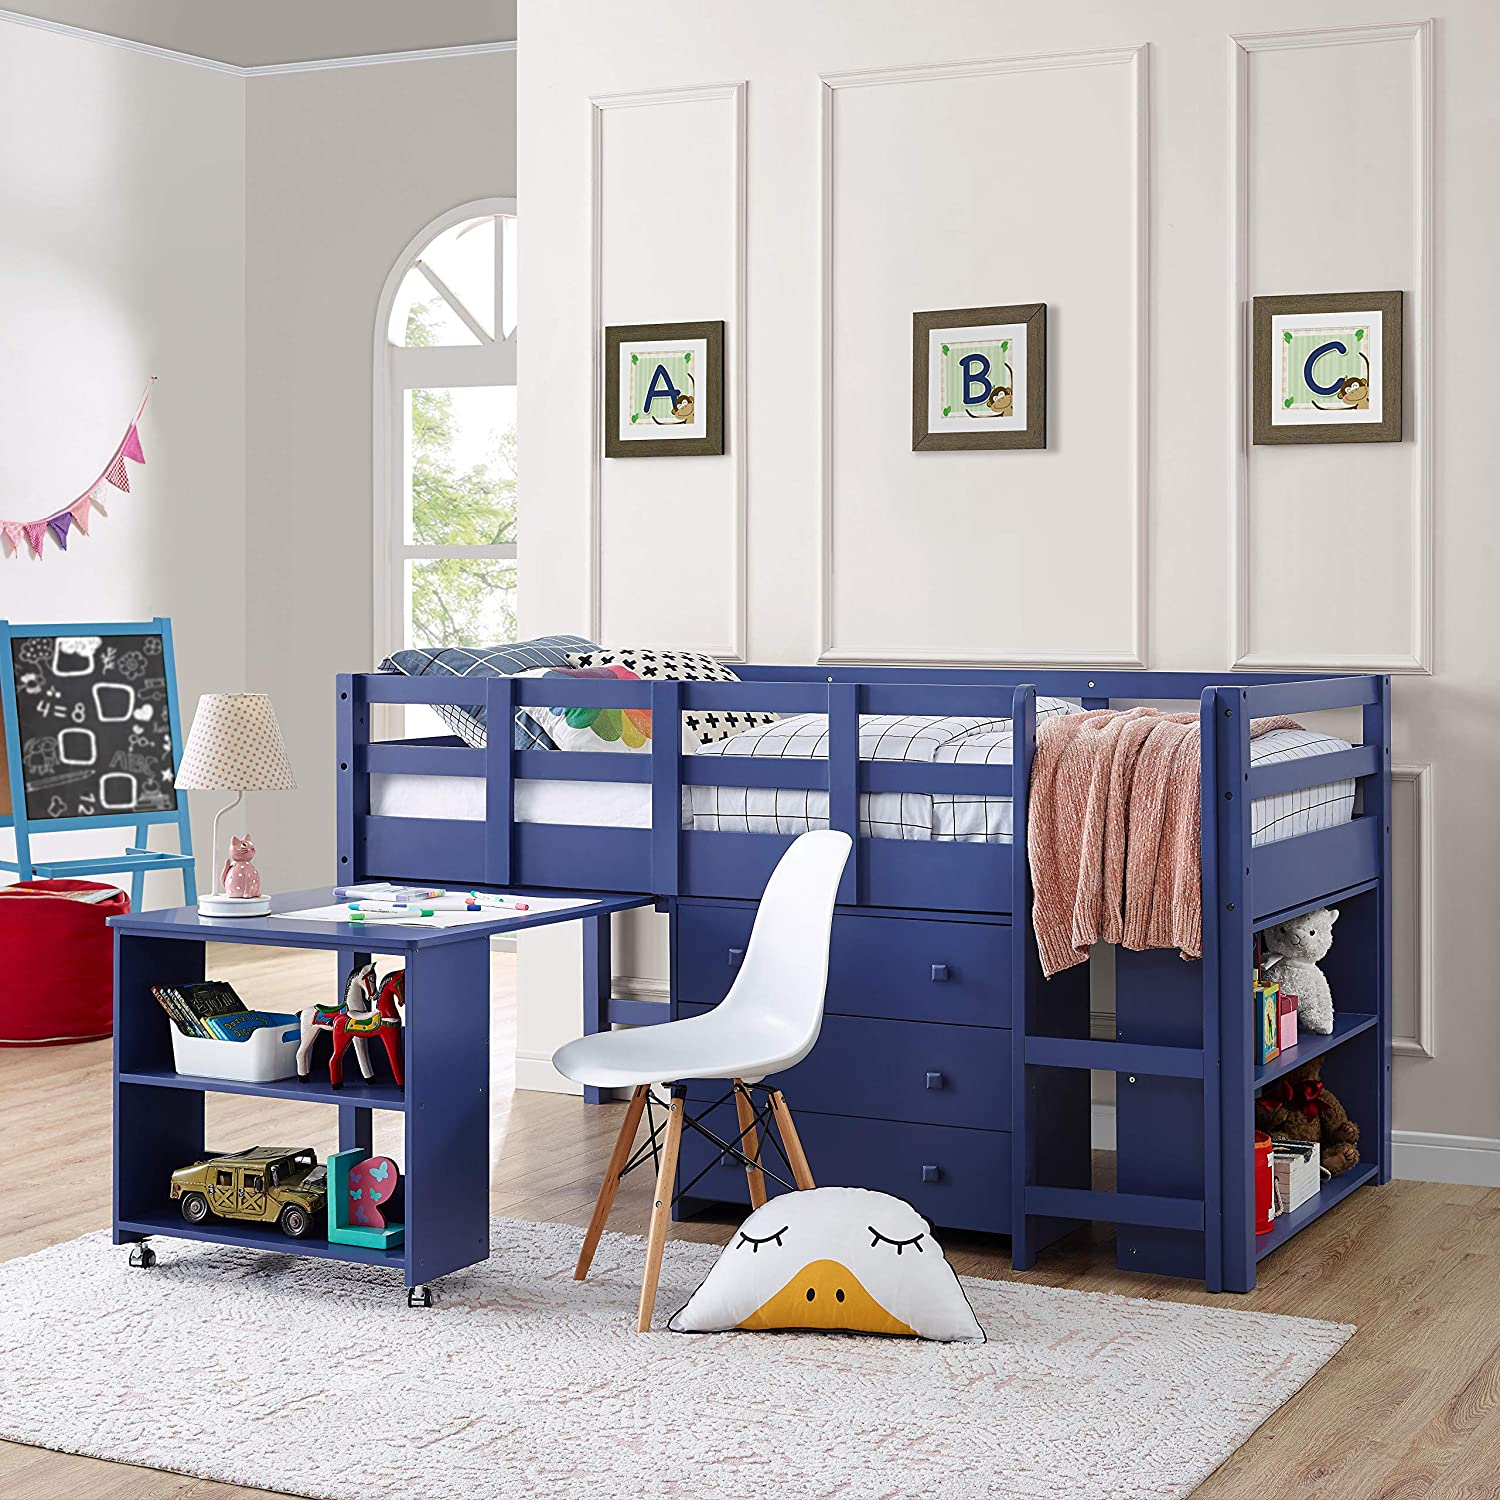 Best for Durability: Naomi Home Low Study Loft Bed